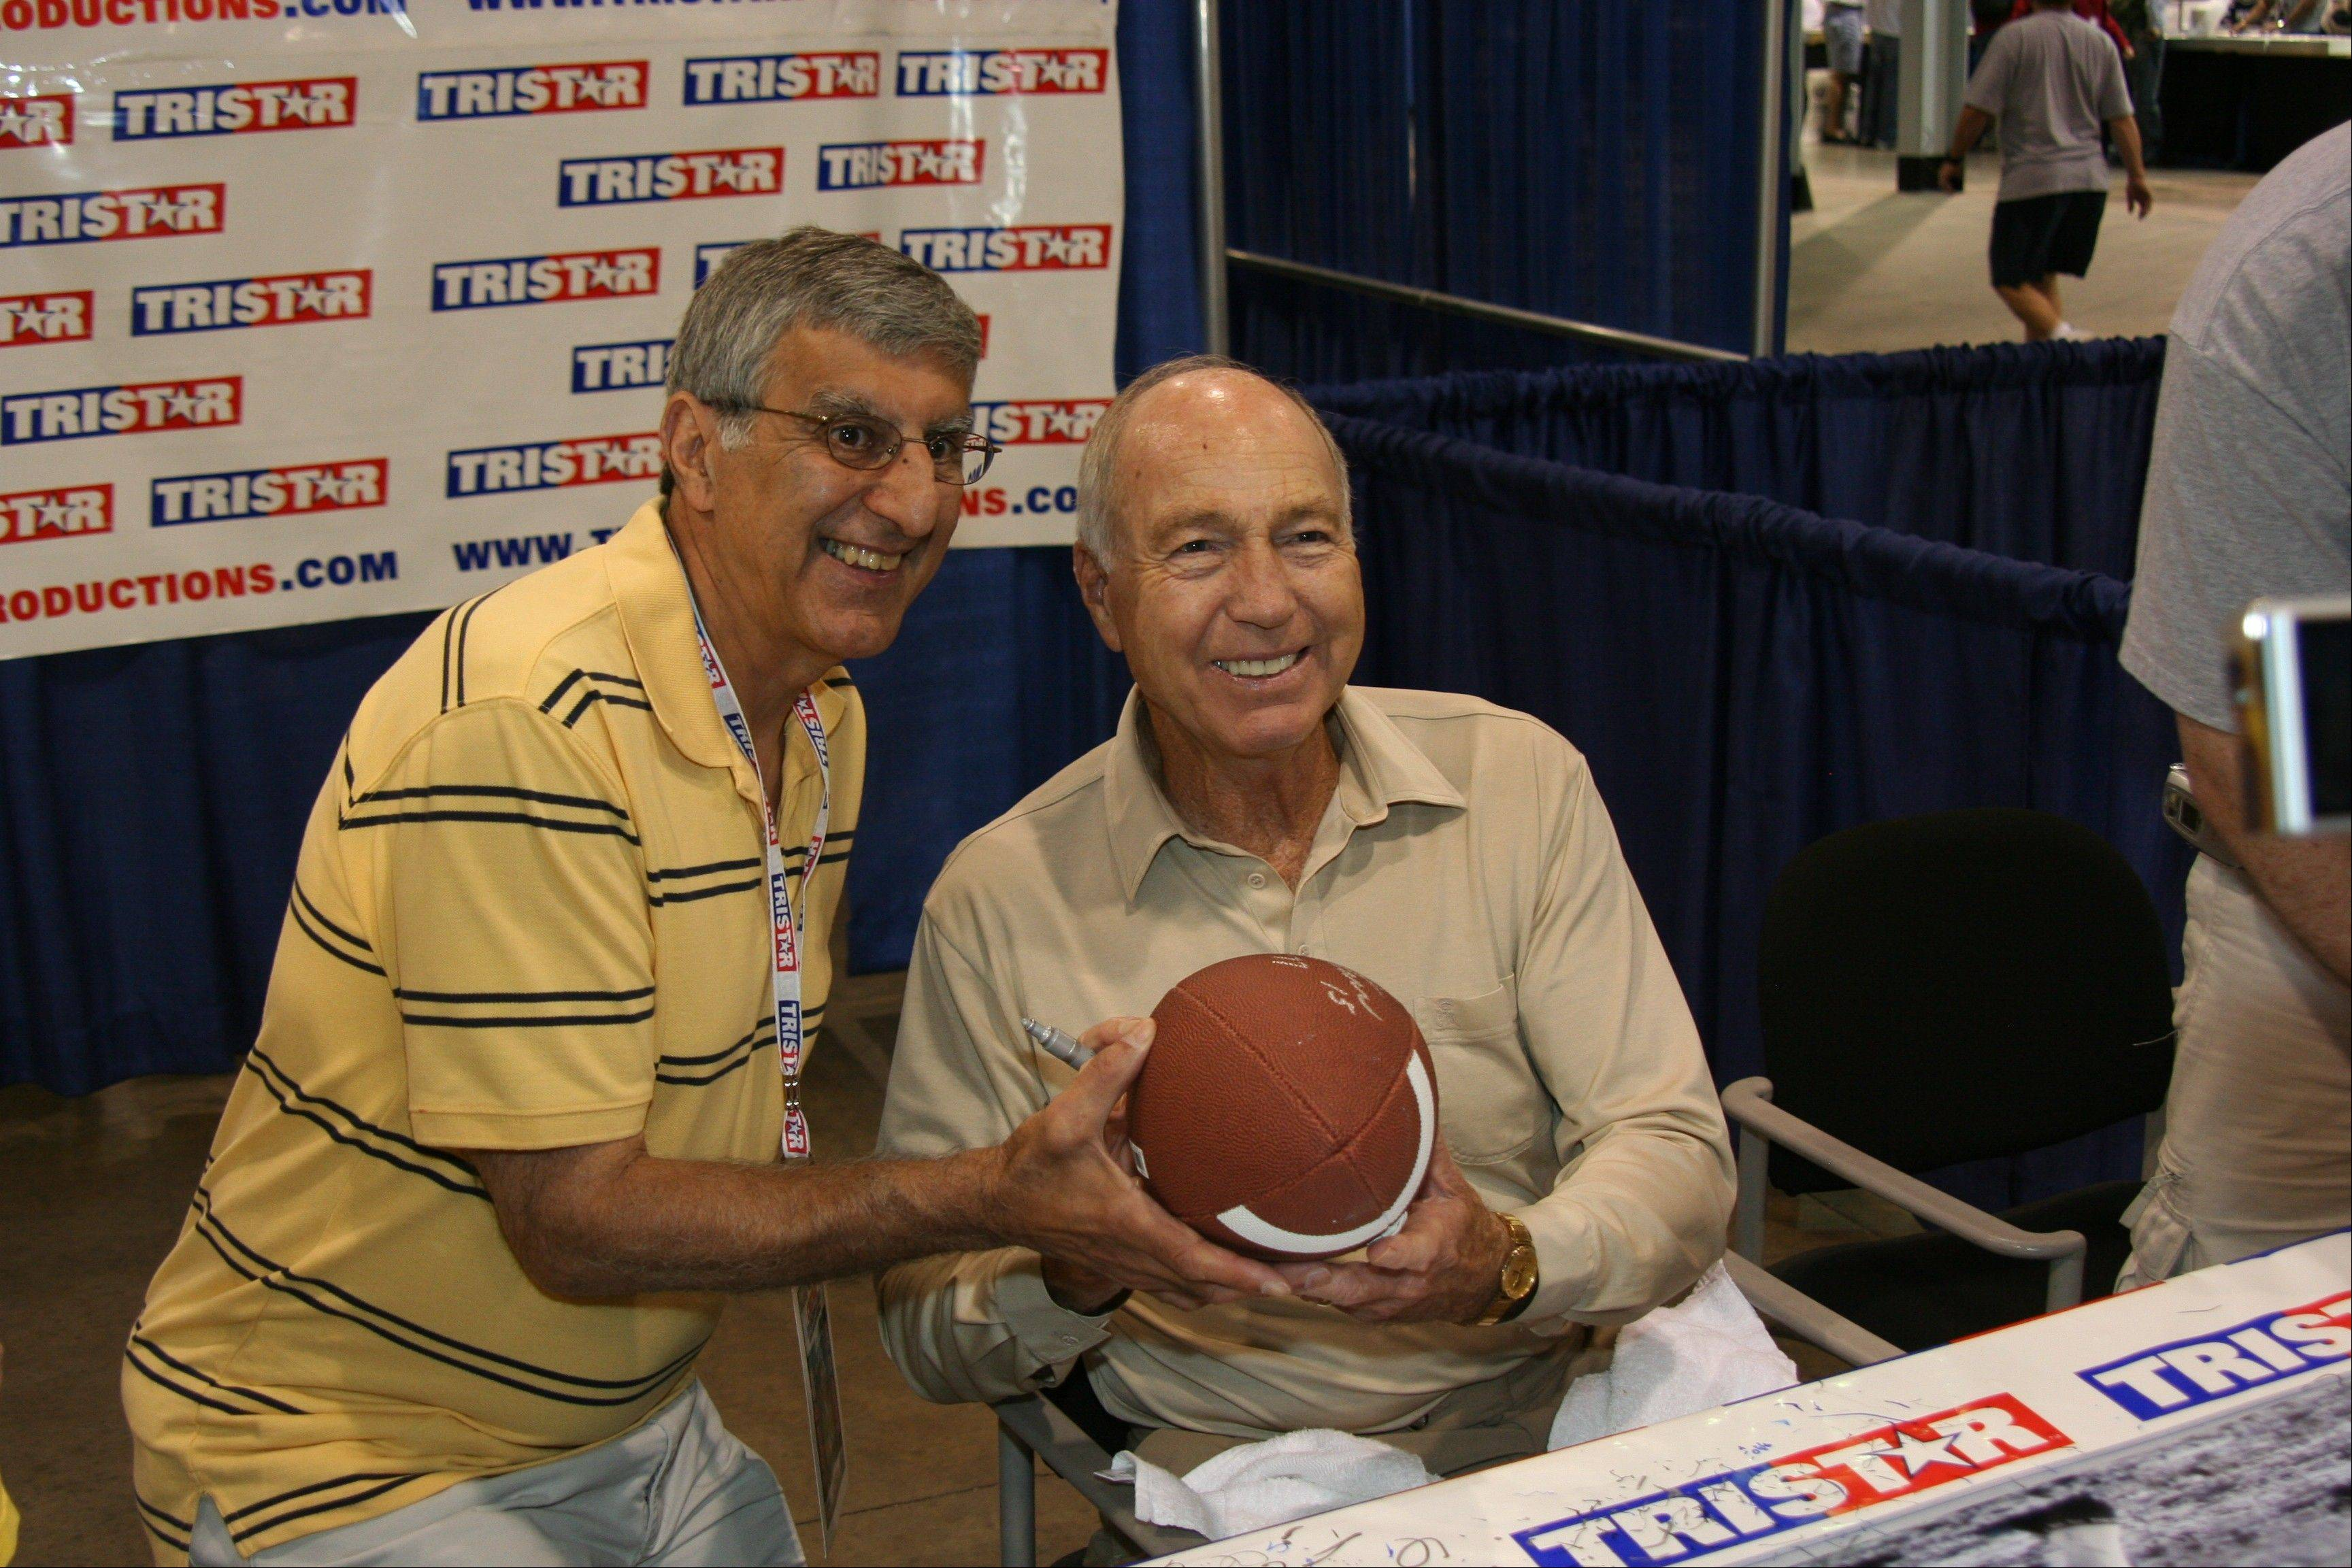 Bart Starr has his photo taken with a fan at a previous convention.